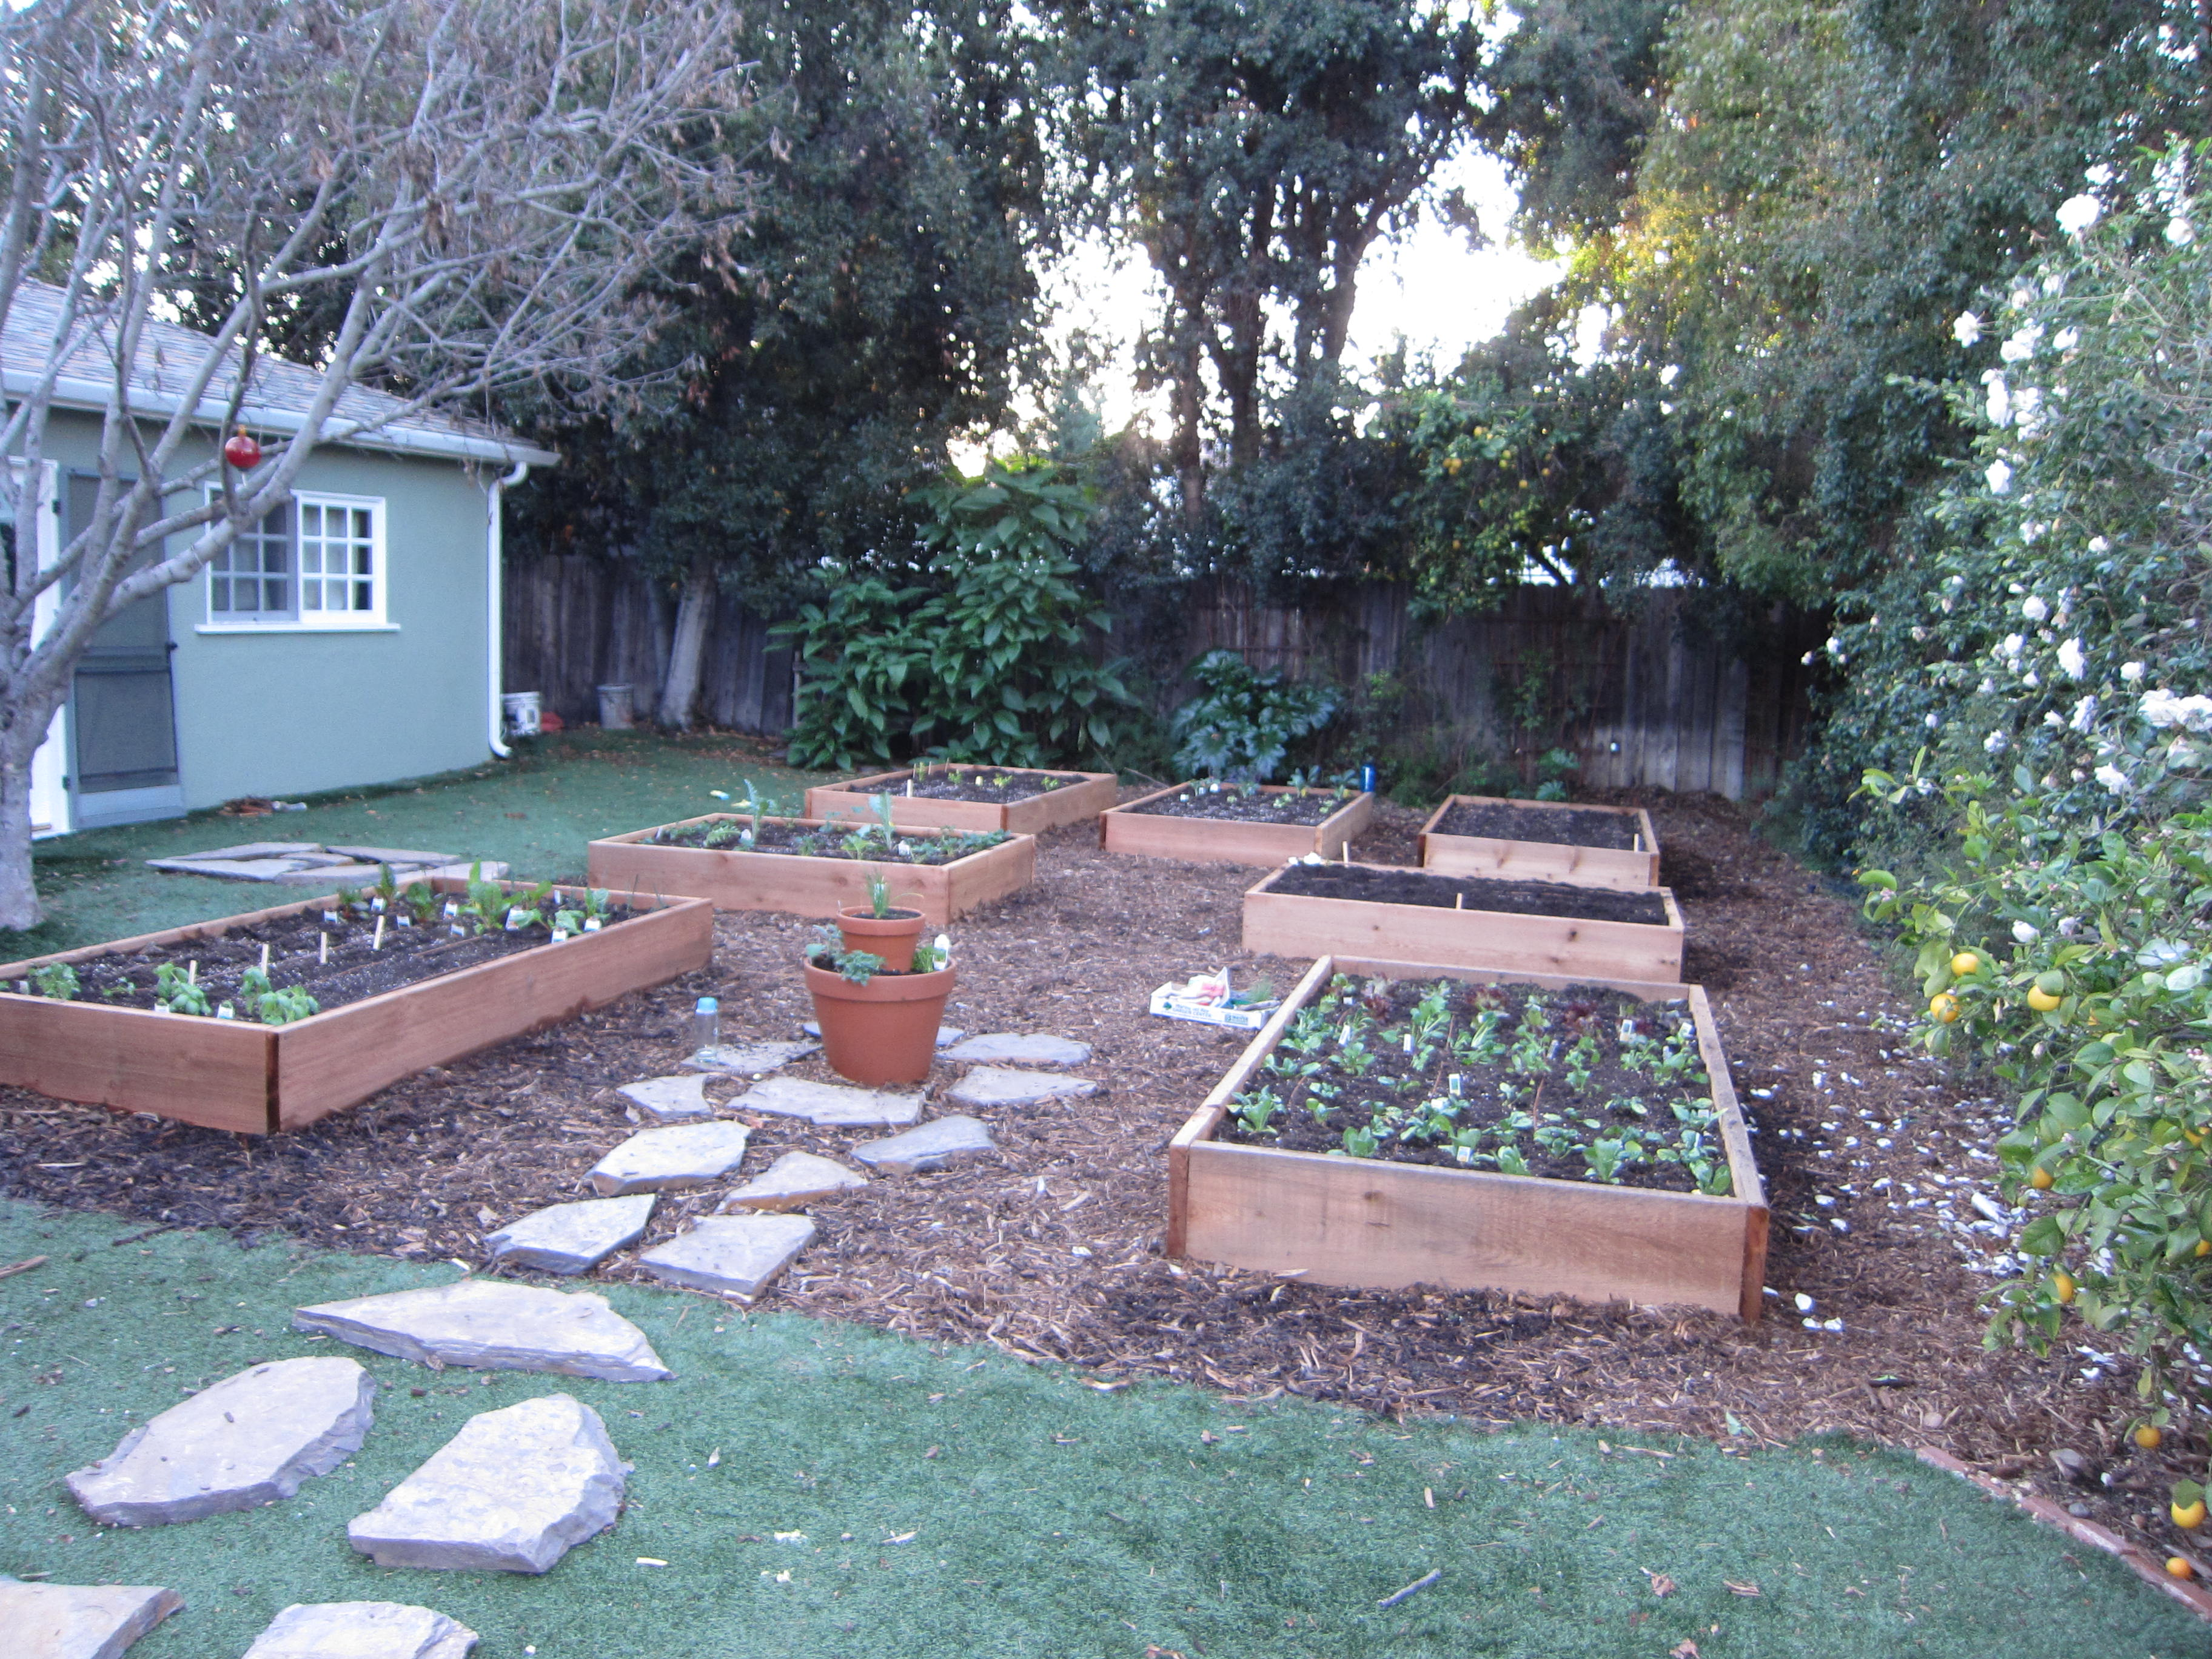 A new garden for a new gardener. She'll have plenty of produce to share all year long.